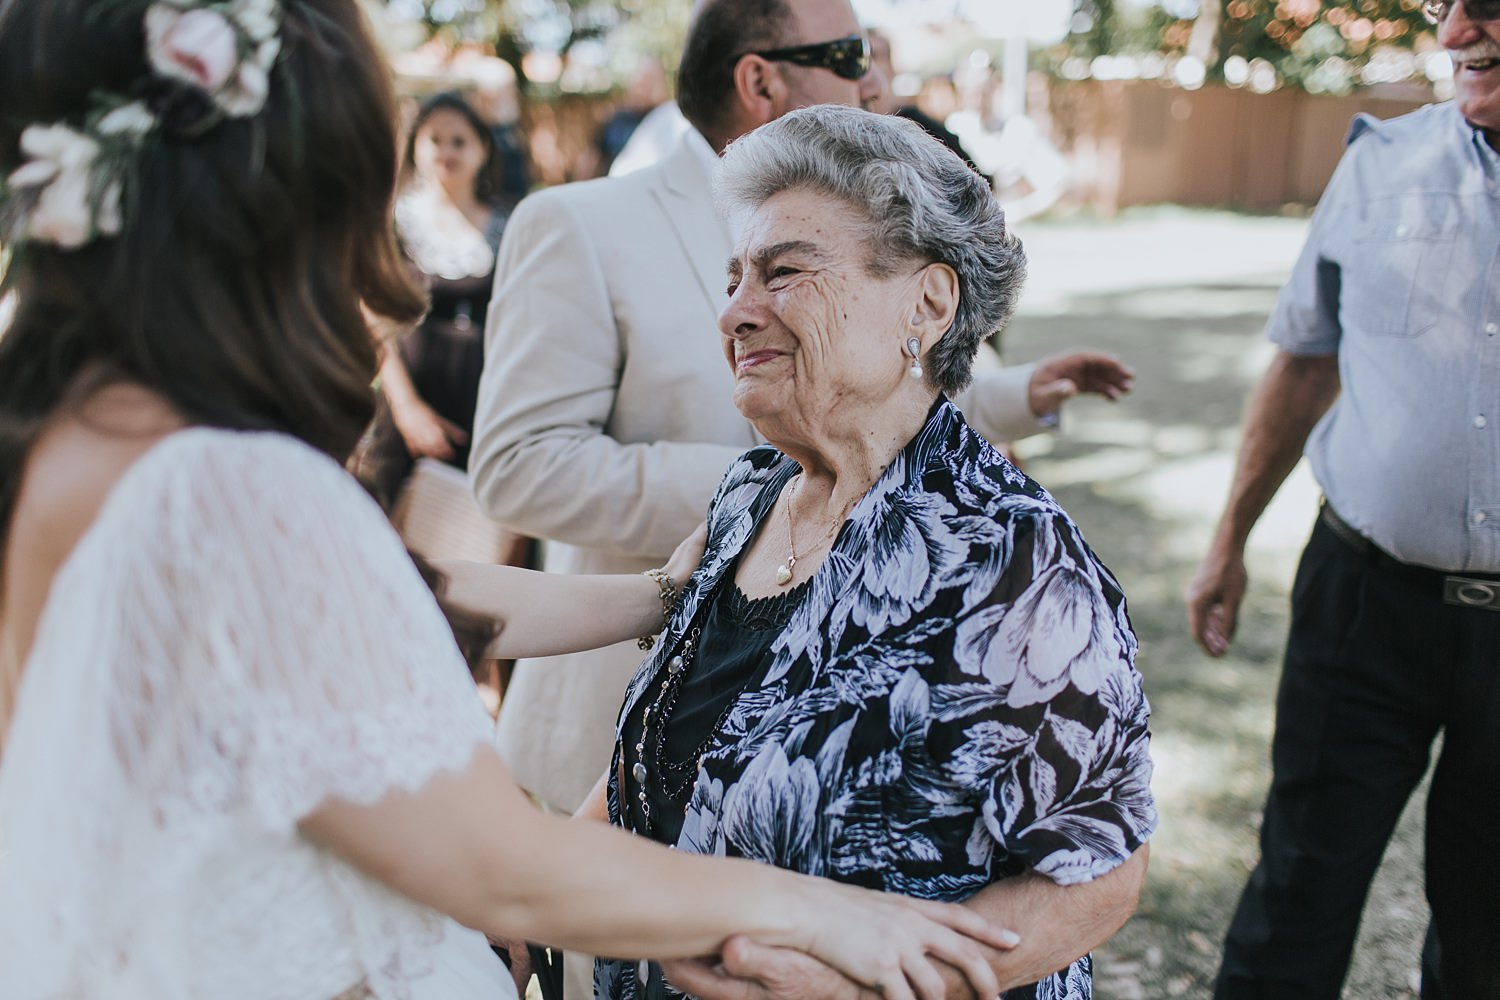 bride being congratulated by nonna after the ceremony